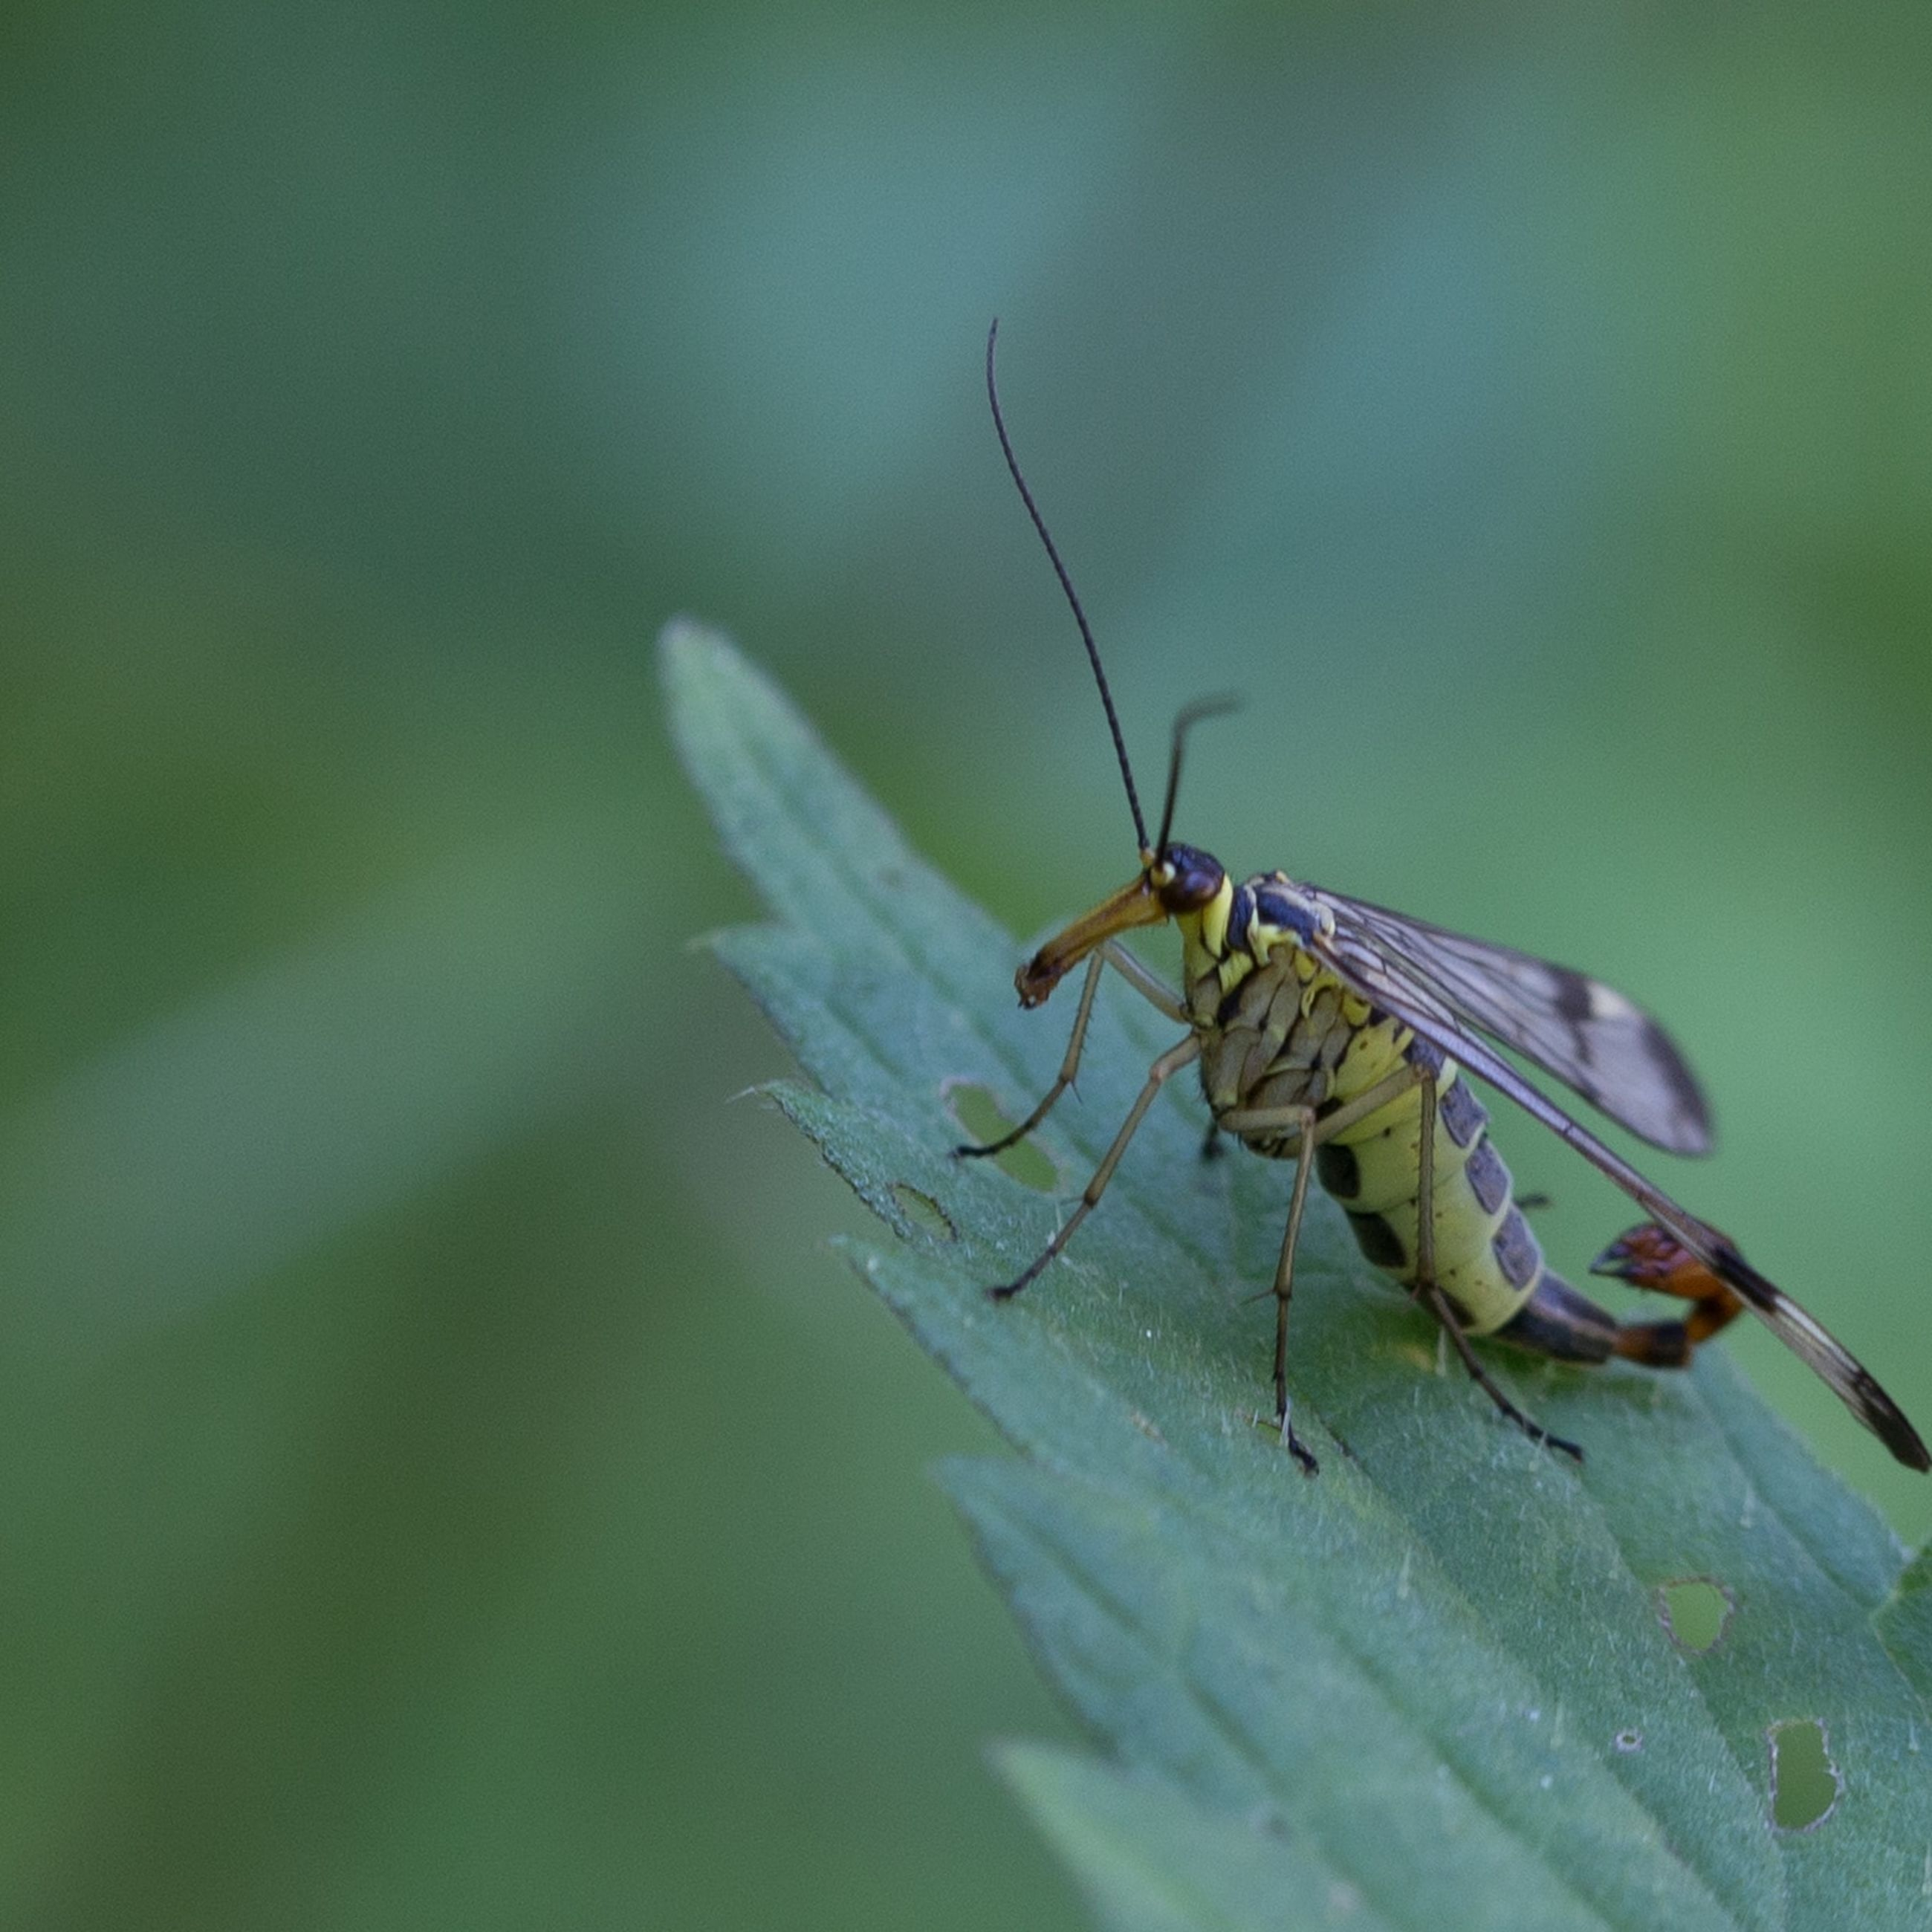 invertebrate, insect, animals in the wild, animal themes, animal wildlife, animal, one animal, plant part, leaf, green color, close-up, day, selective focus, plant, no people, nature, animal wing, outdoors, zoology, beauty in nature, animal eye